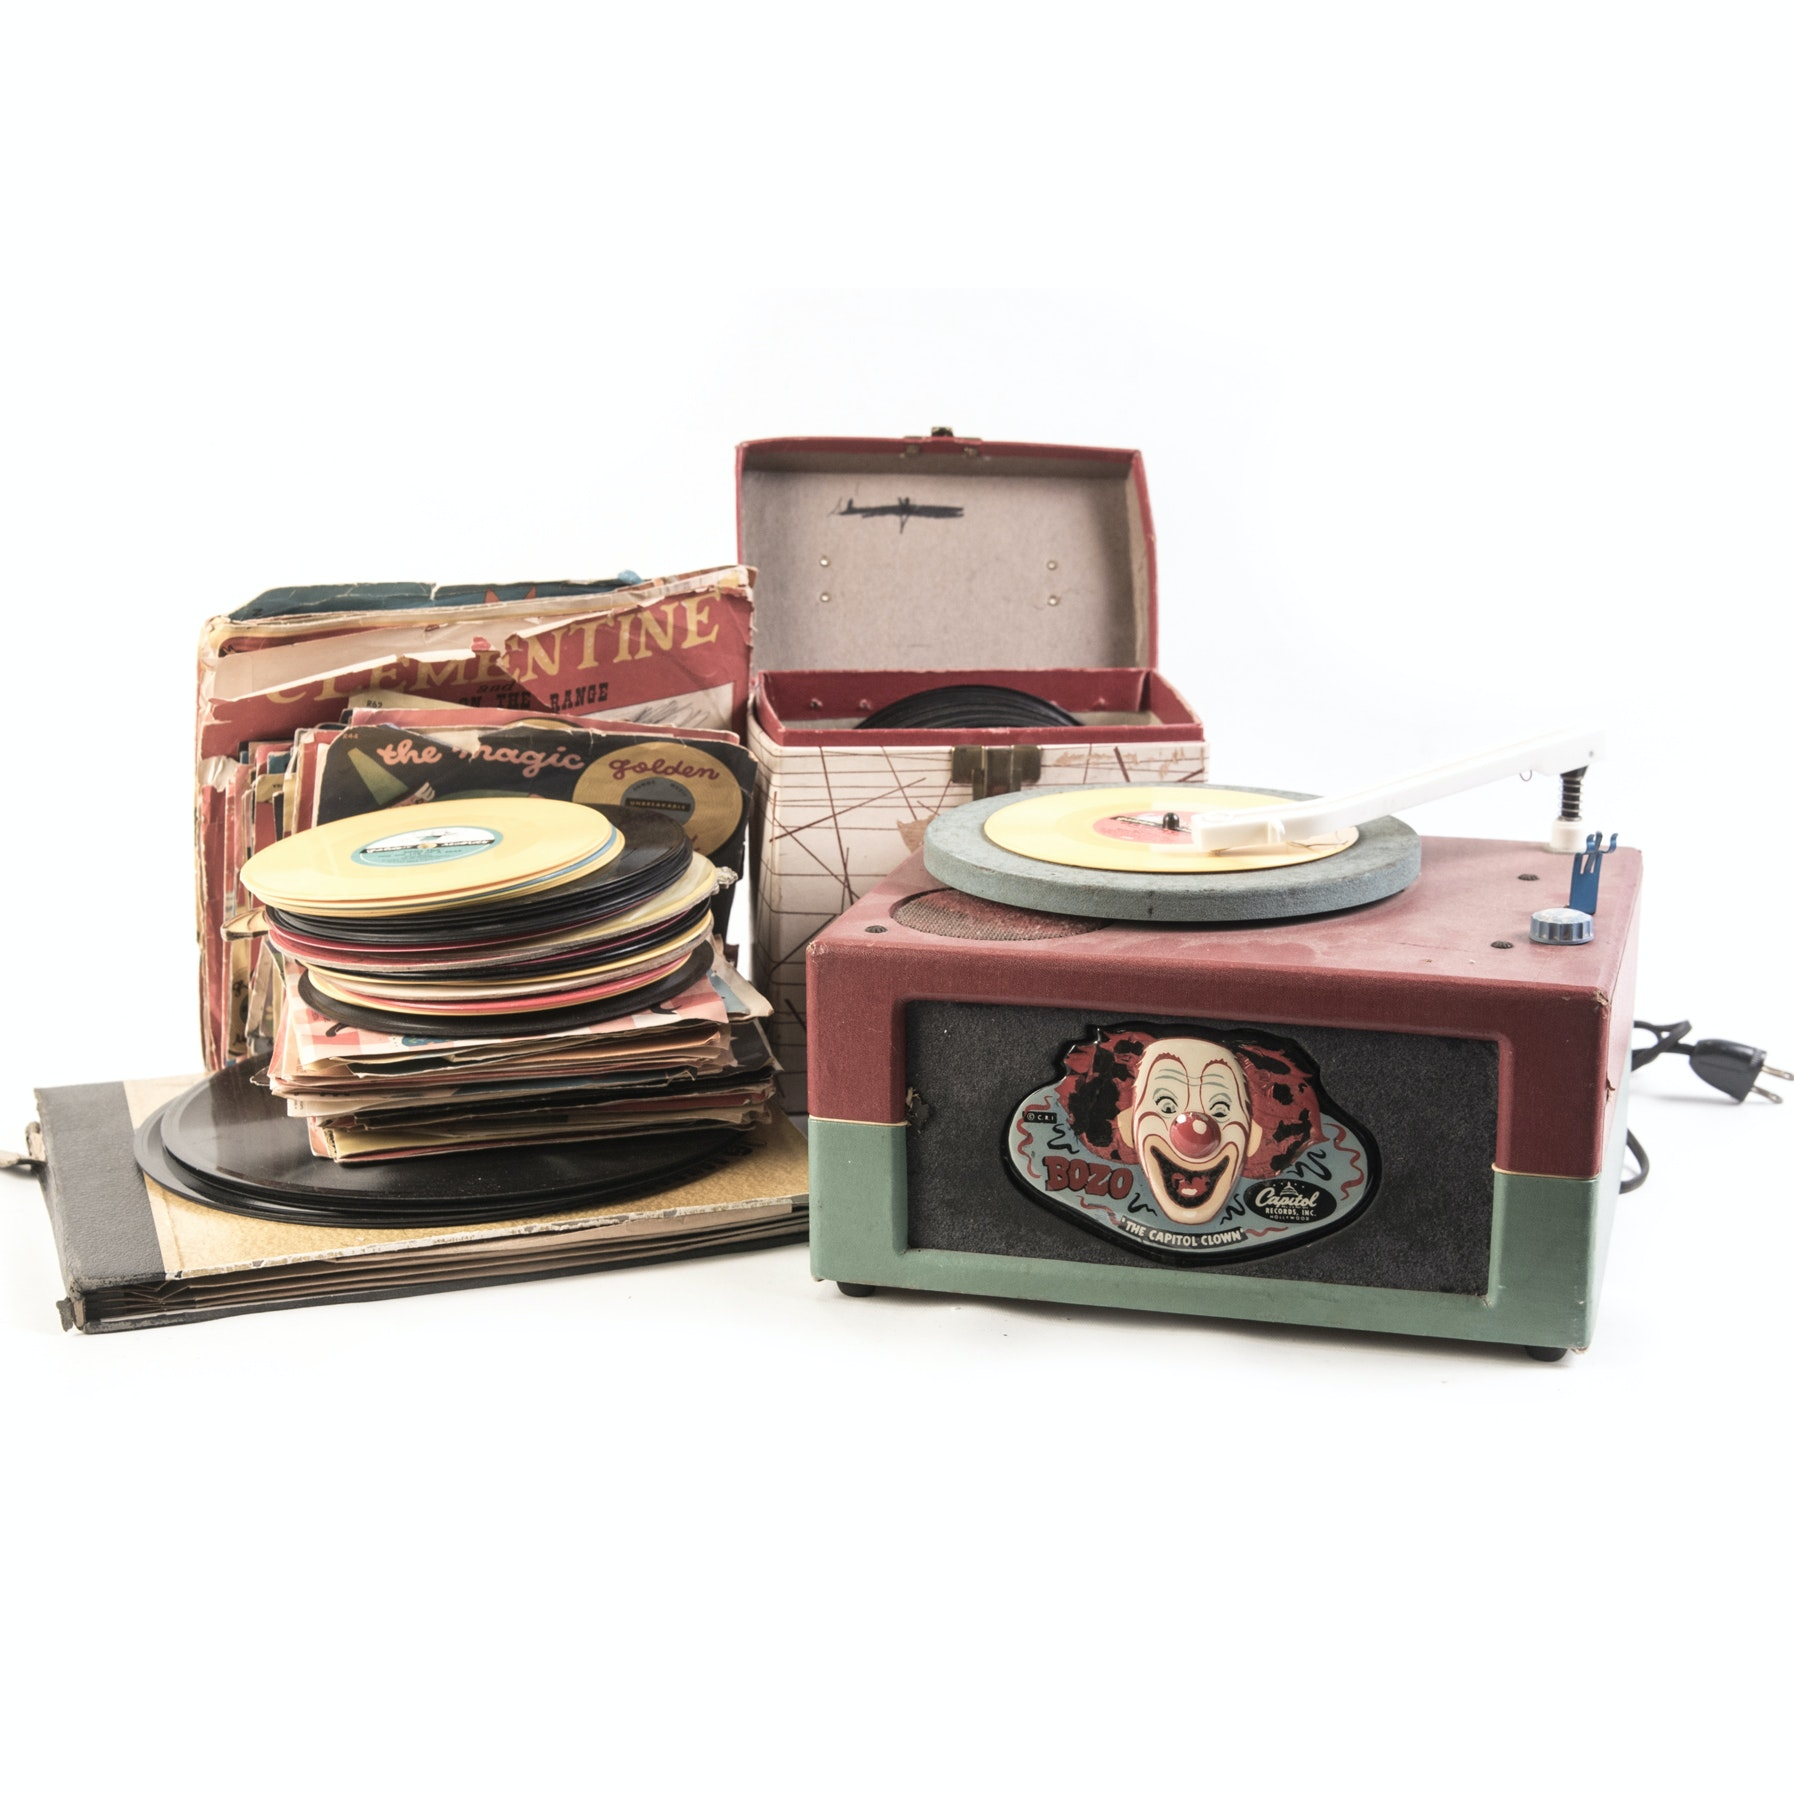 """Vintage """"Bozo The Clown"""" Record Player and Record Collection"""